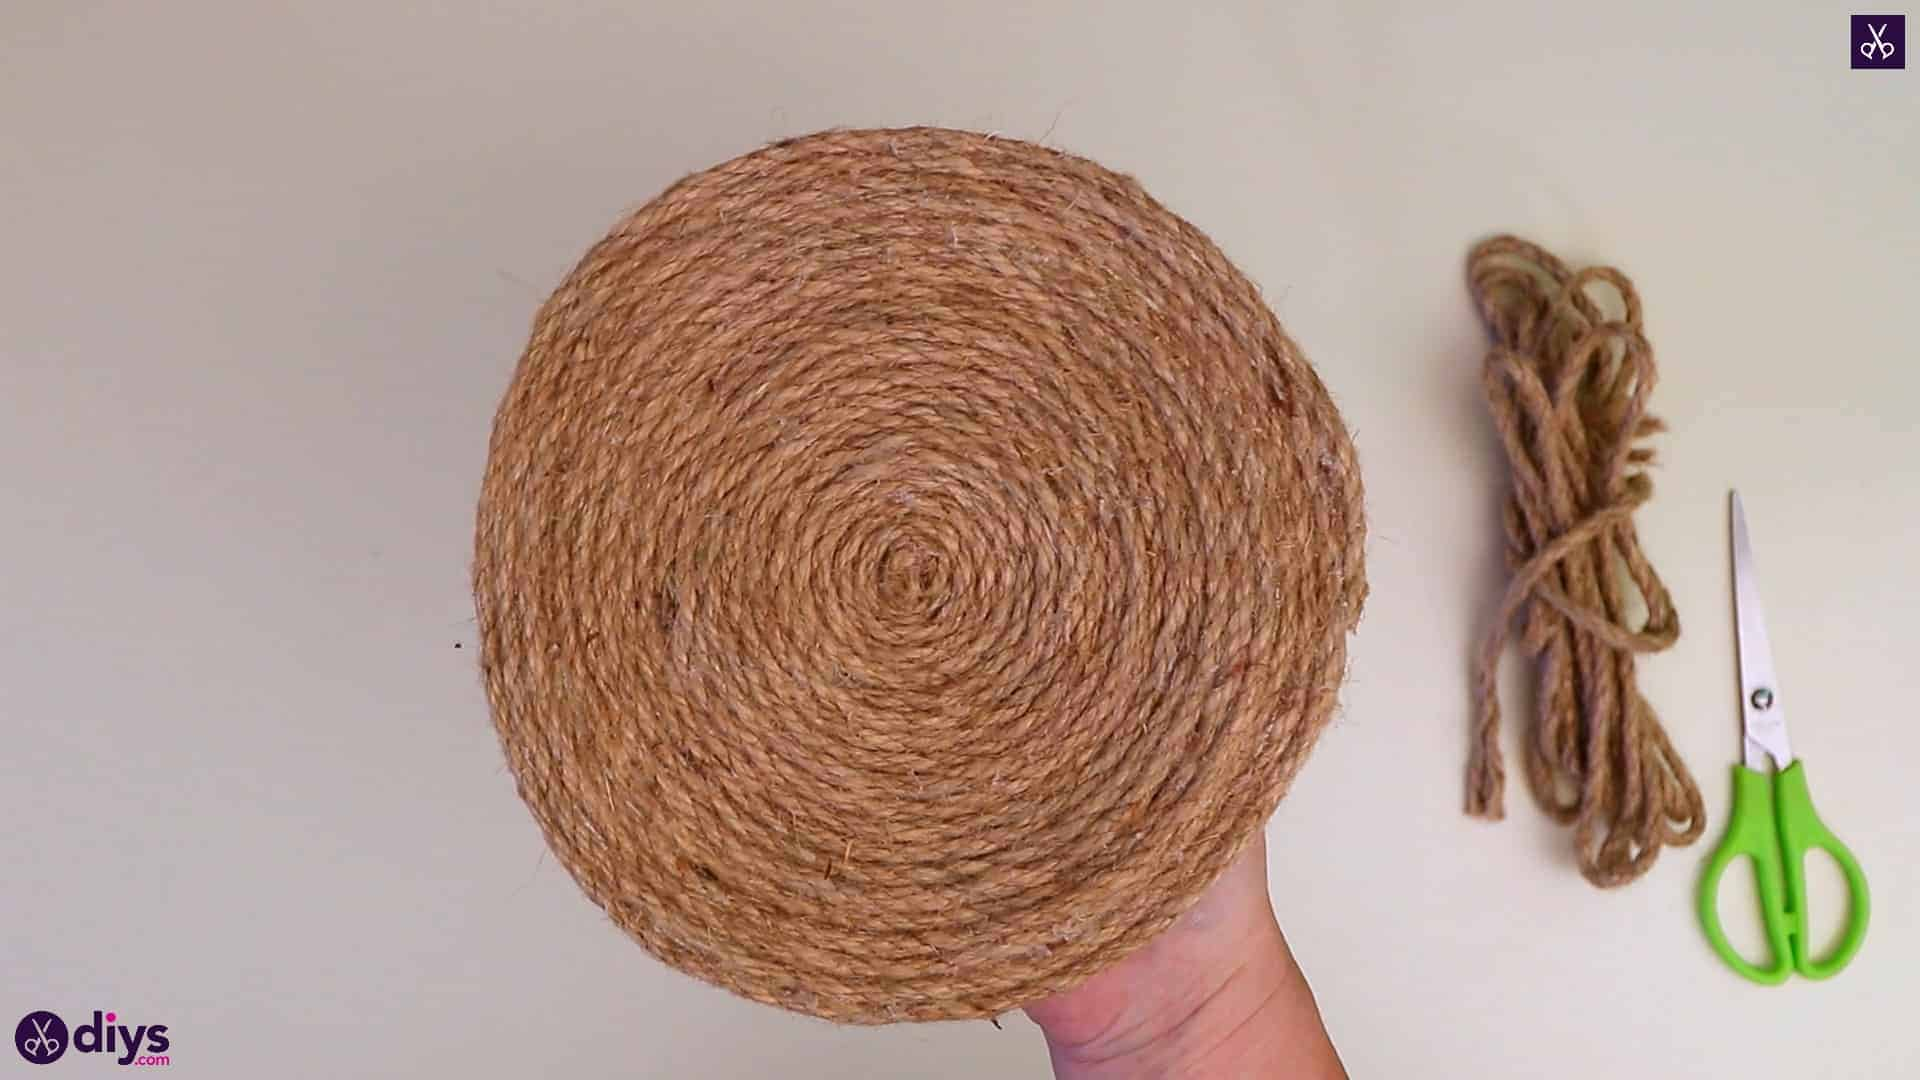 Diy round jute placemat rustic object